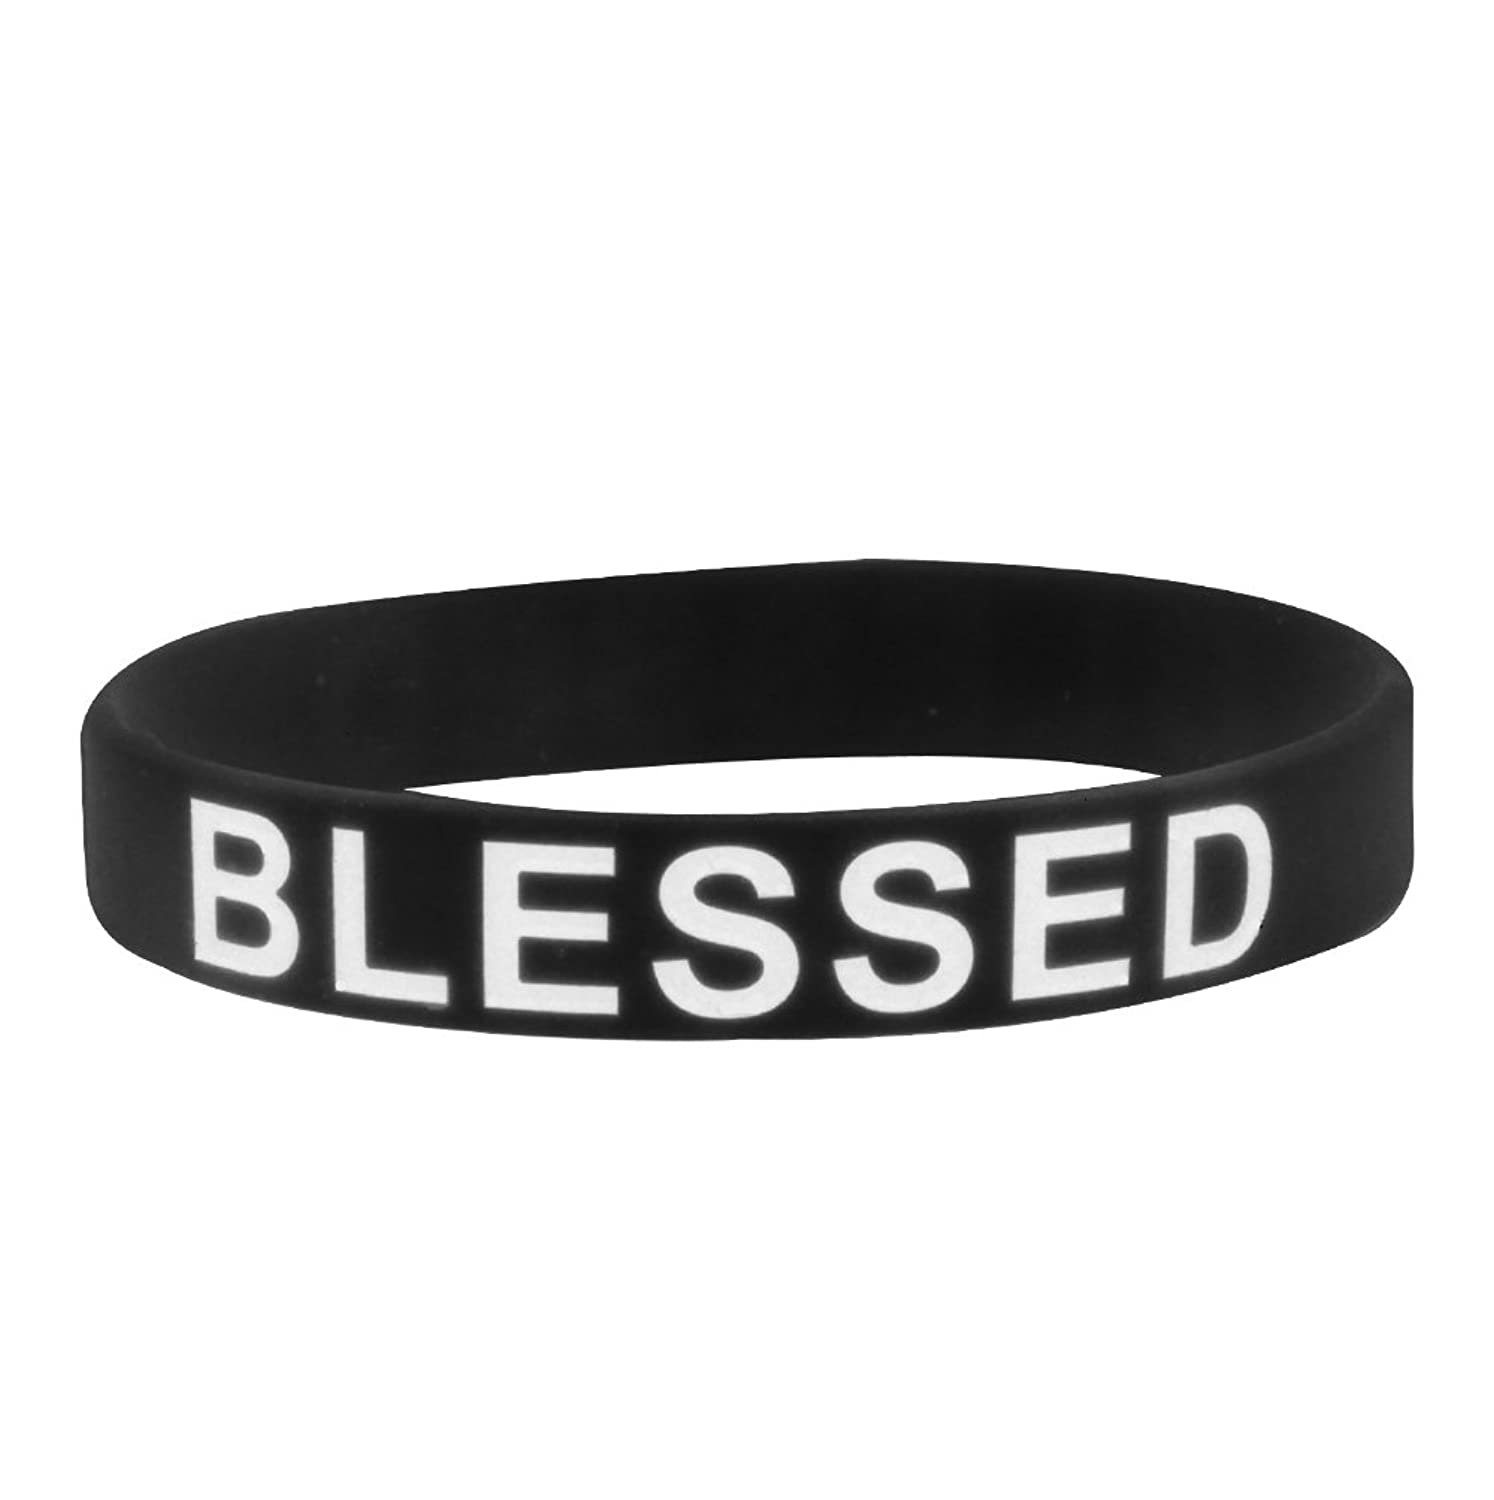 m bangle band collections women arrivals img products wristband boutique r s cuff bracelet womens wrist new fashion